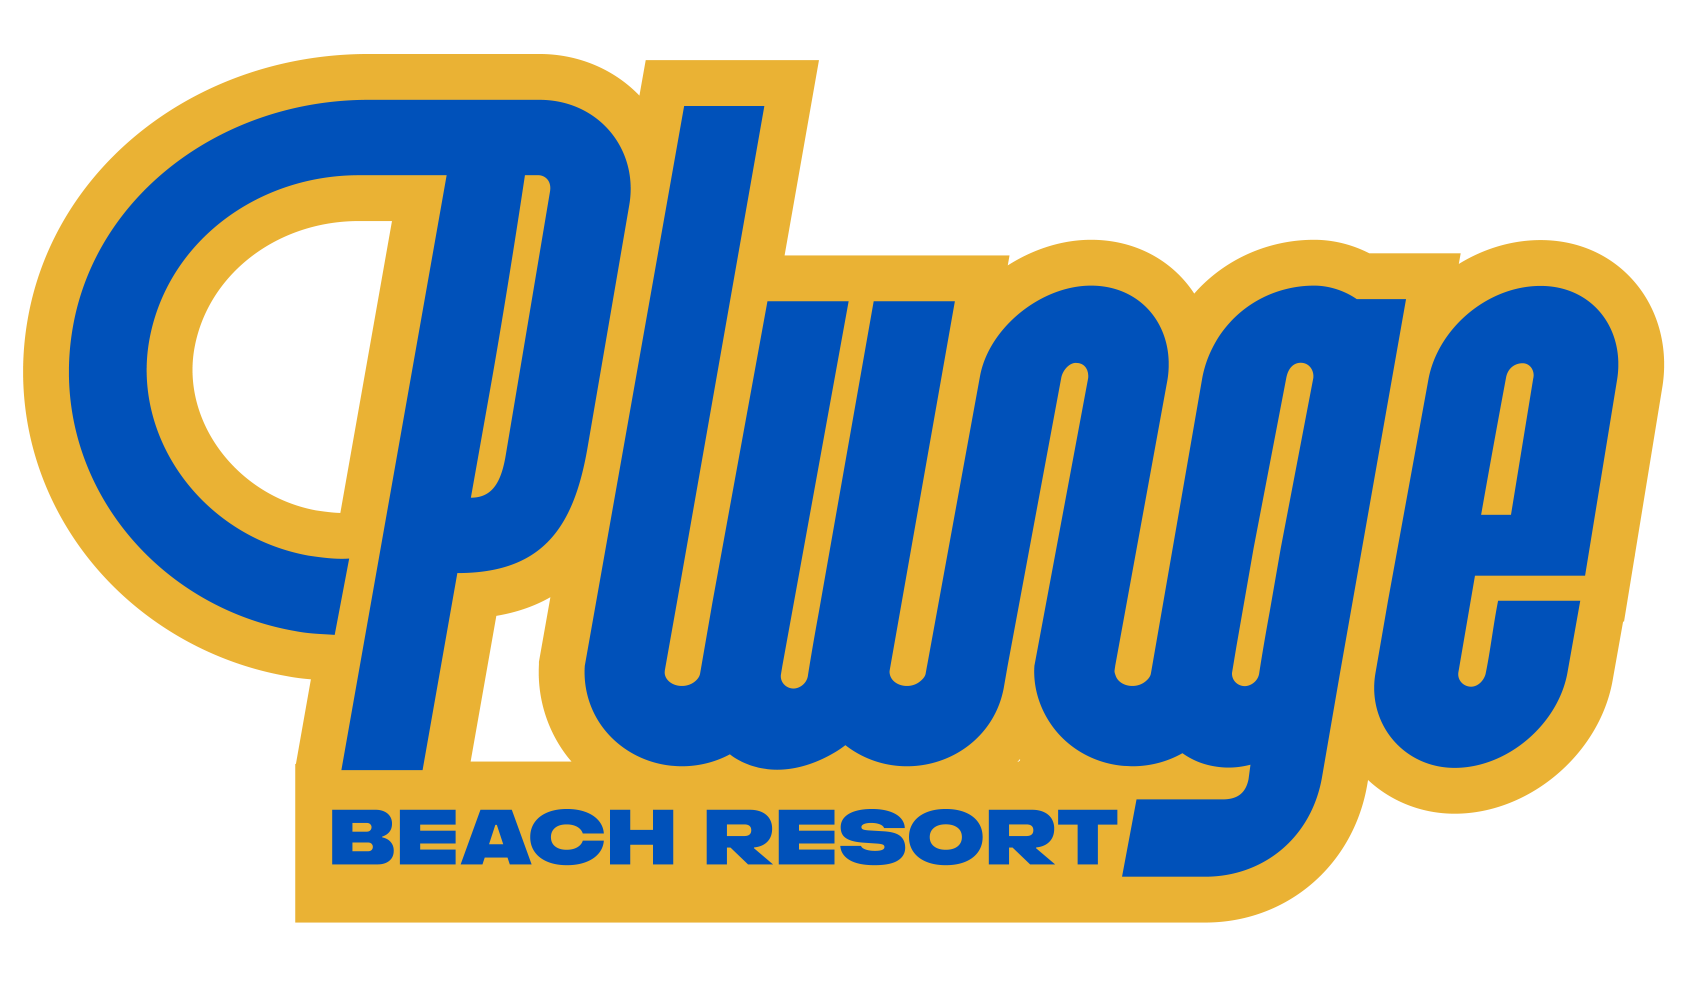 Logo for Plunge Beach Resort